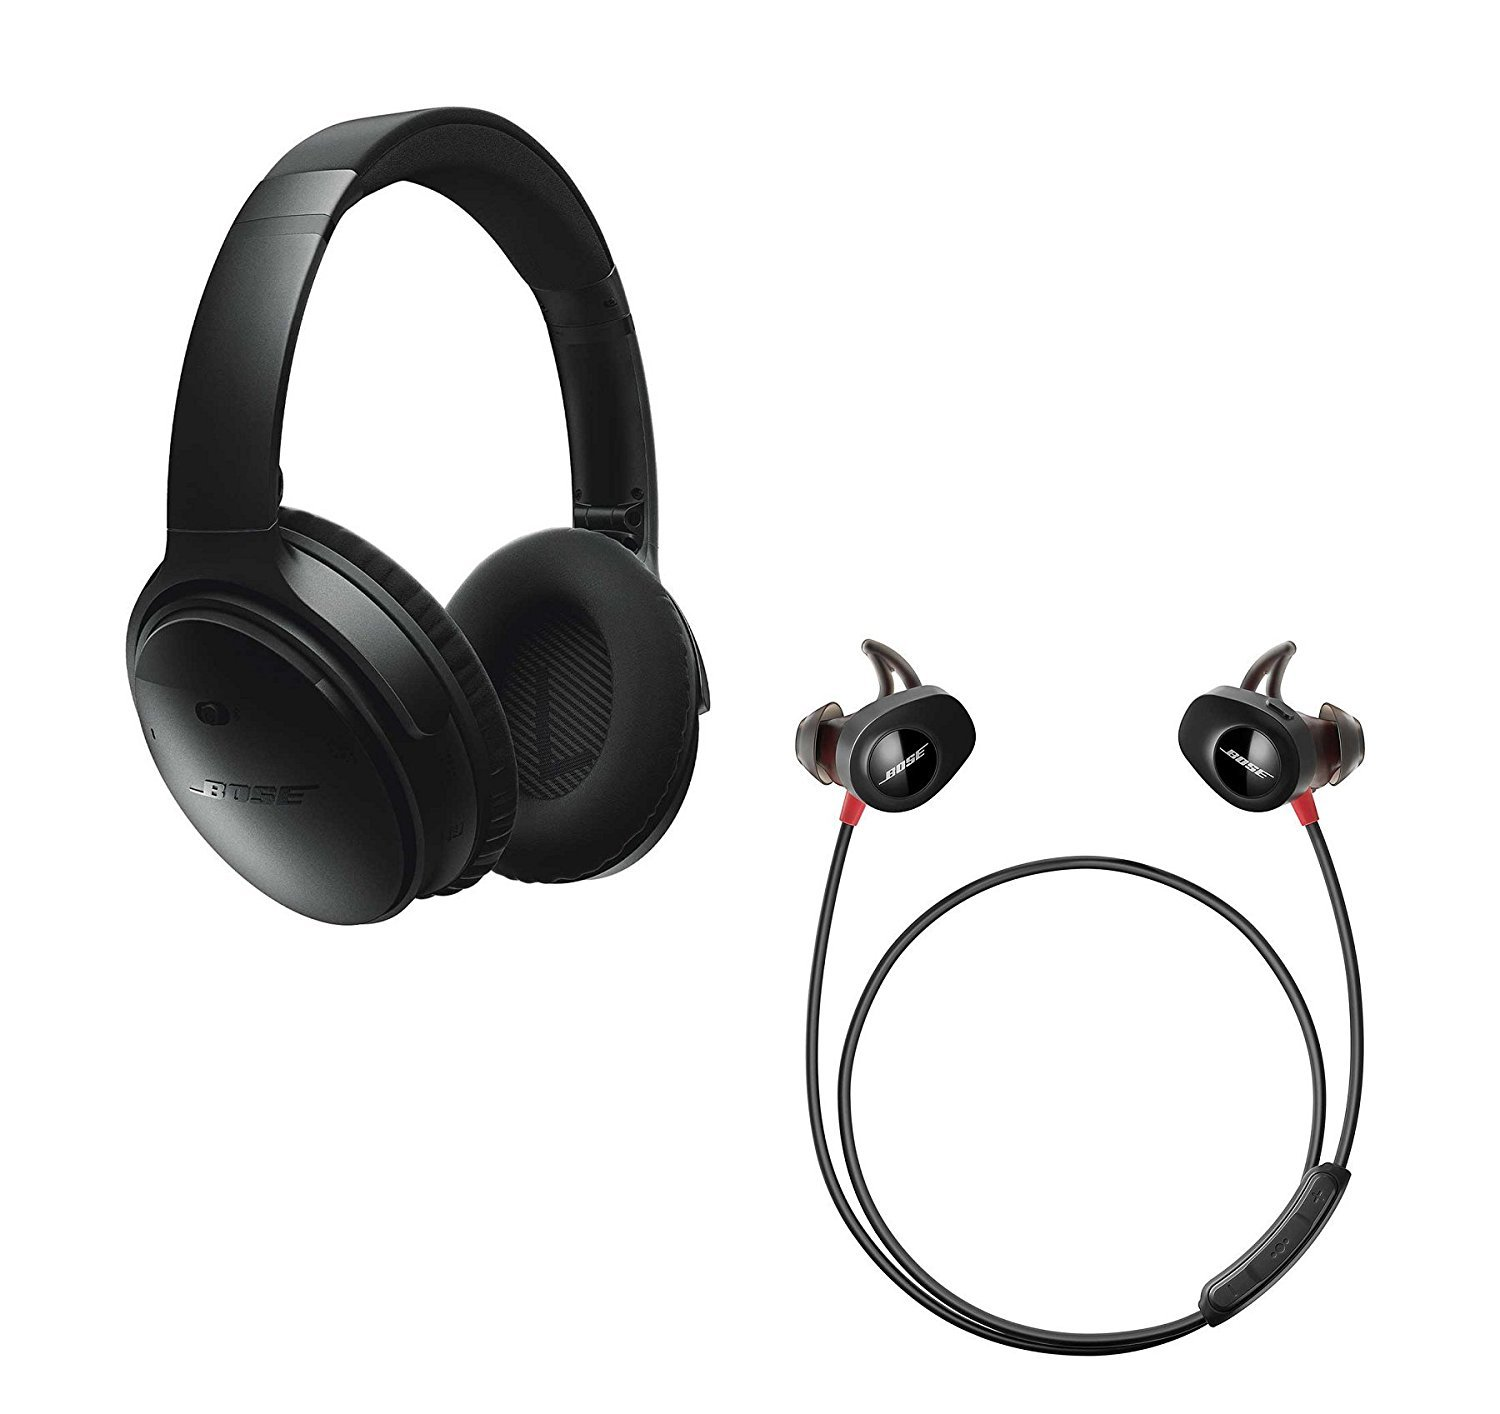 Bose QuietComfort 35 (Series I) Noise Cancelling Over-ear (Black) & SoundSport Pulse In-ear (Red) Wireless Bluetooth Headphone Bundle